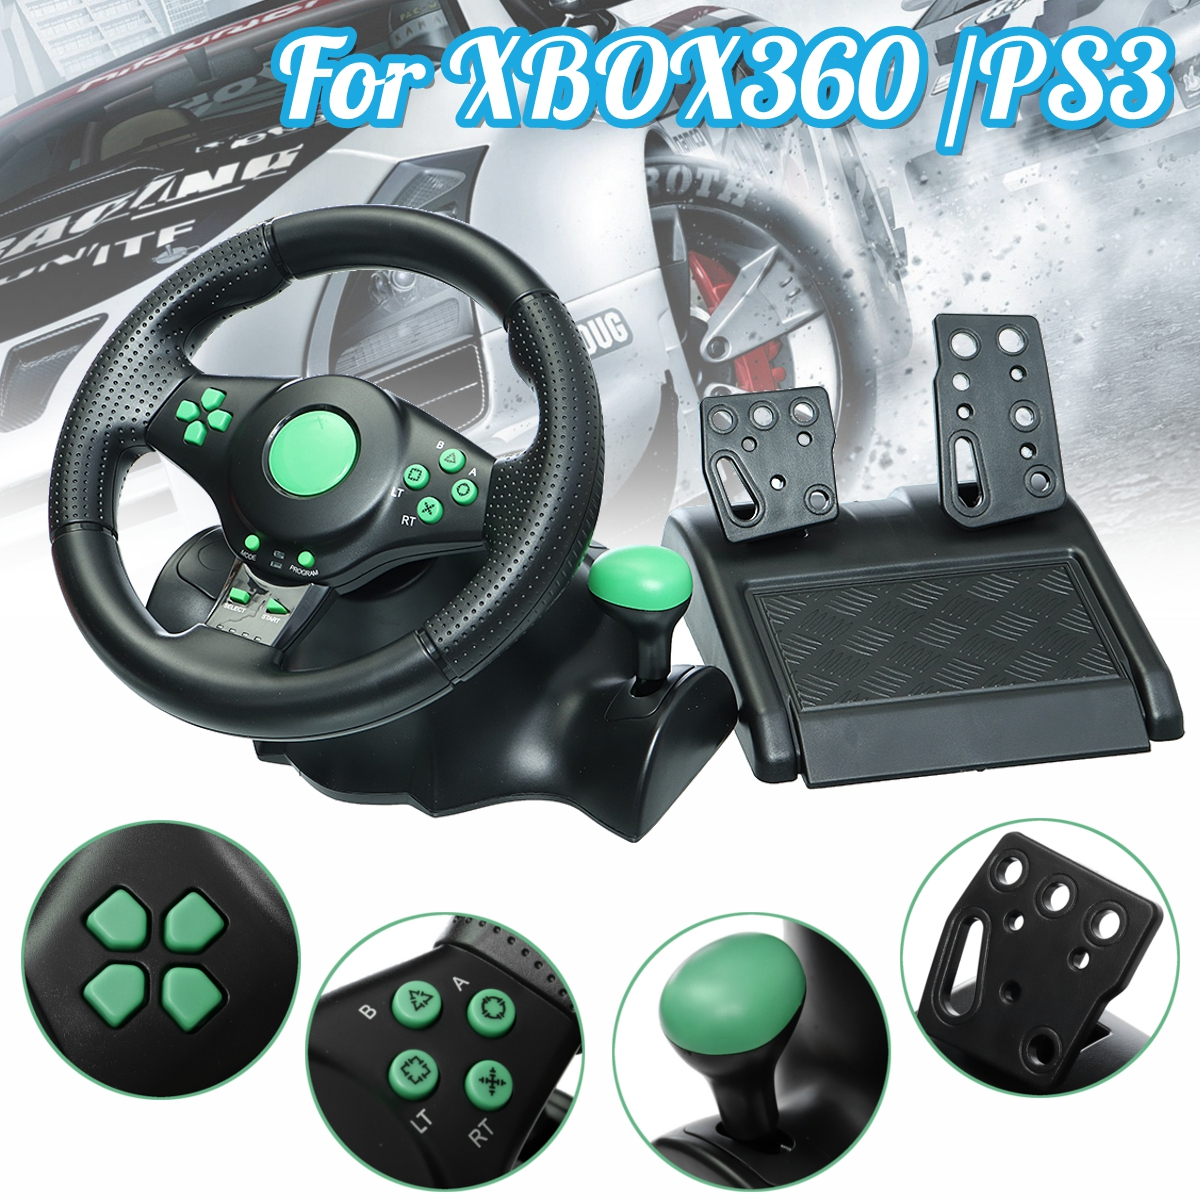 Feedback Racing Steering Wheel + Pedal Set Racing Gaming Driving PC for ps3 цена и фото